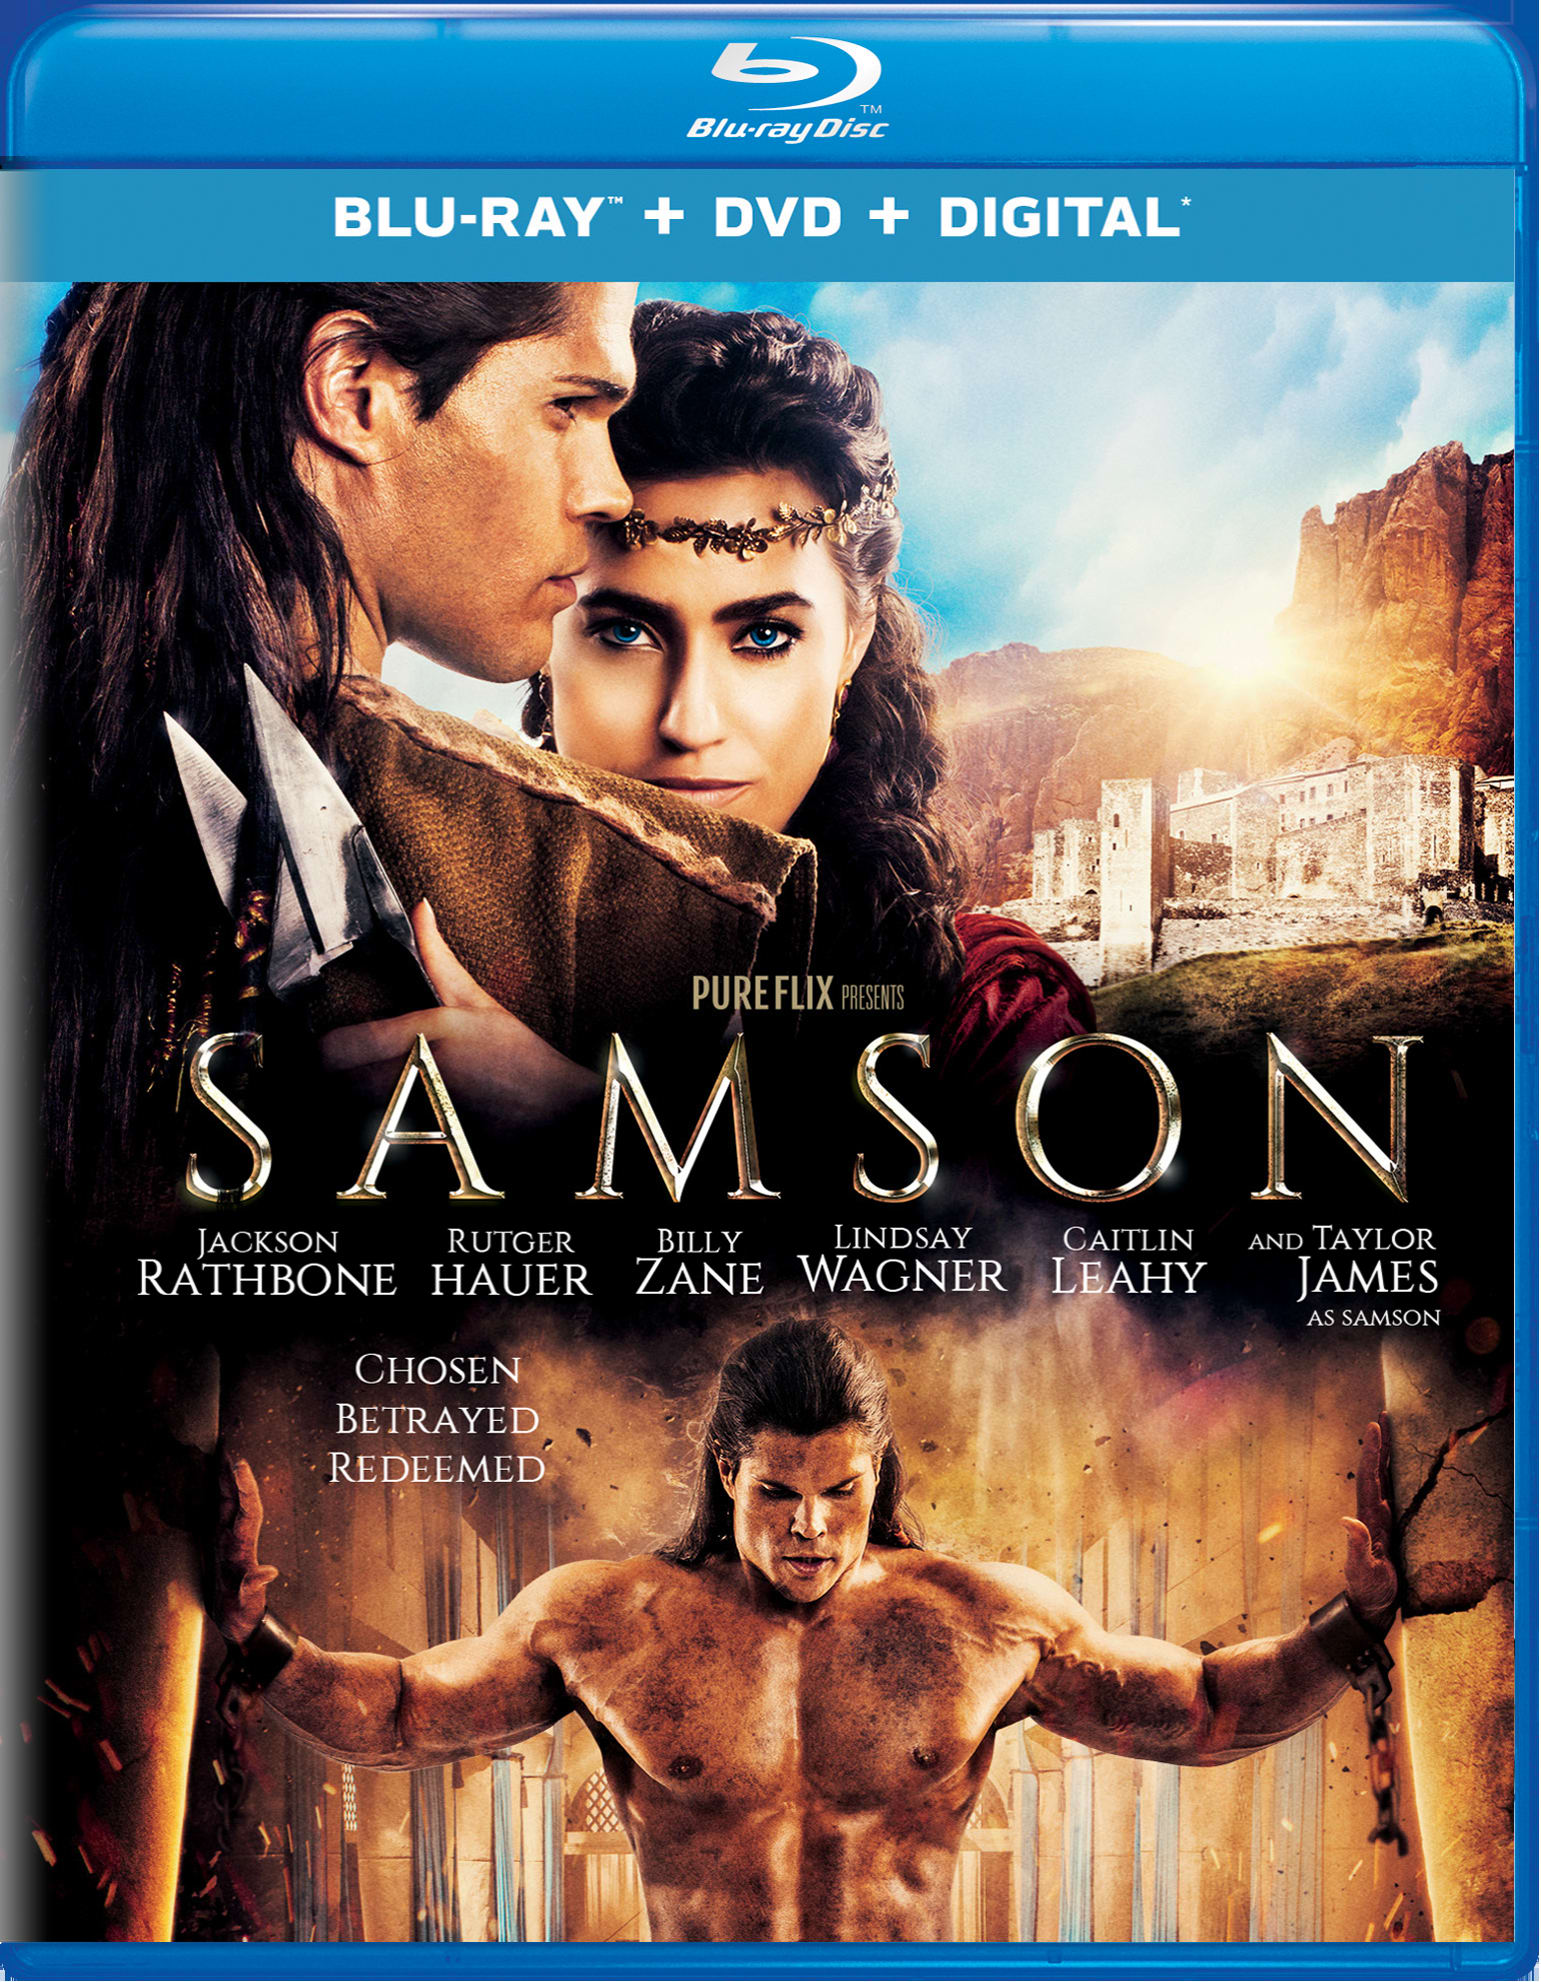 Samson (DVD + Digital) [Blu-ray]